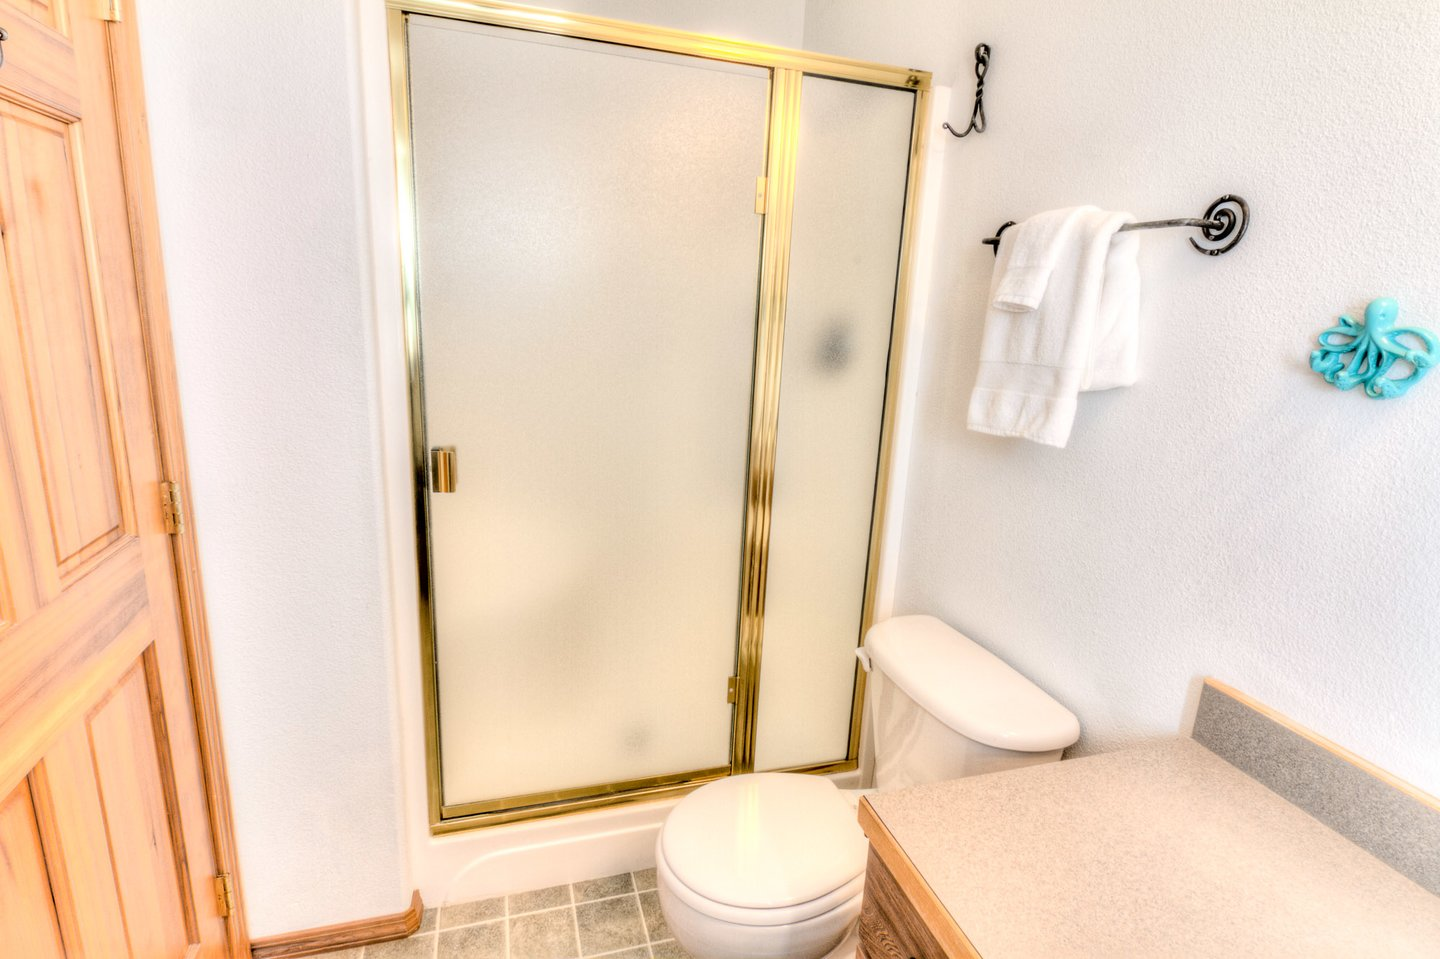 Master ensuite for additional privacy.